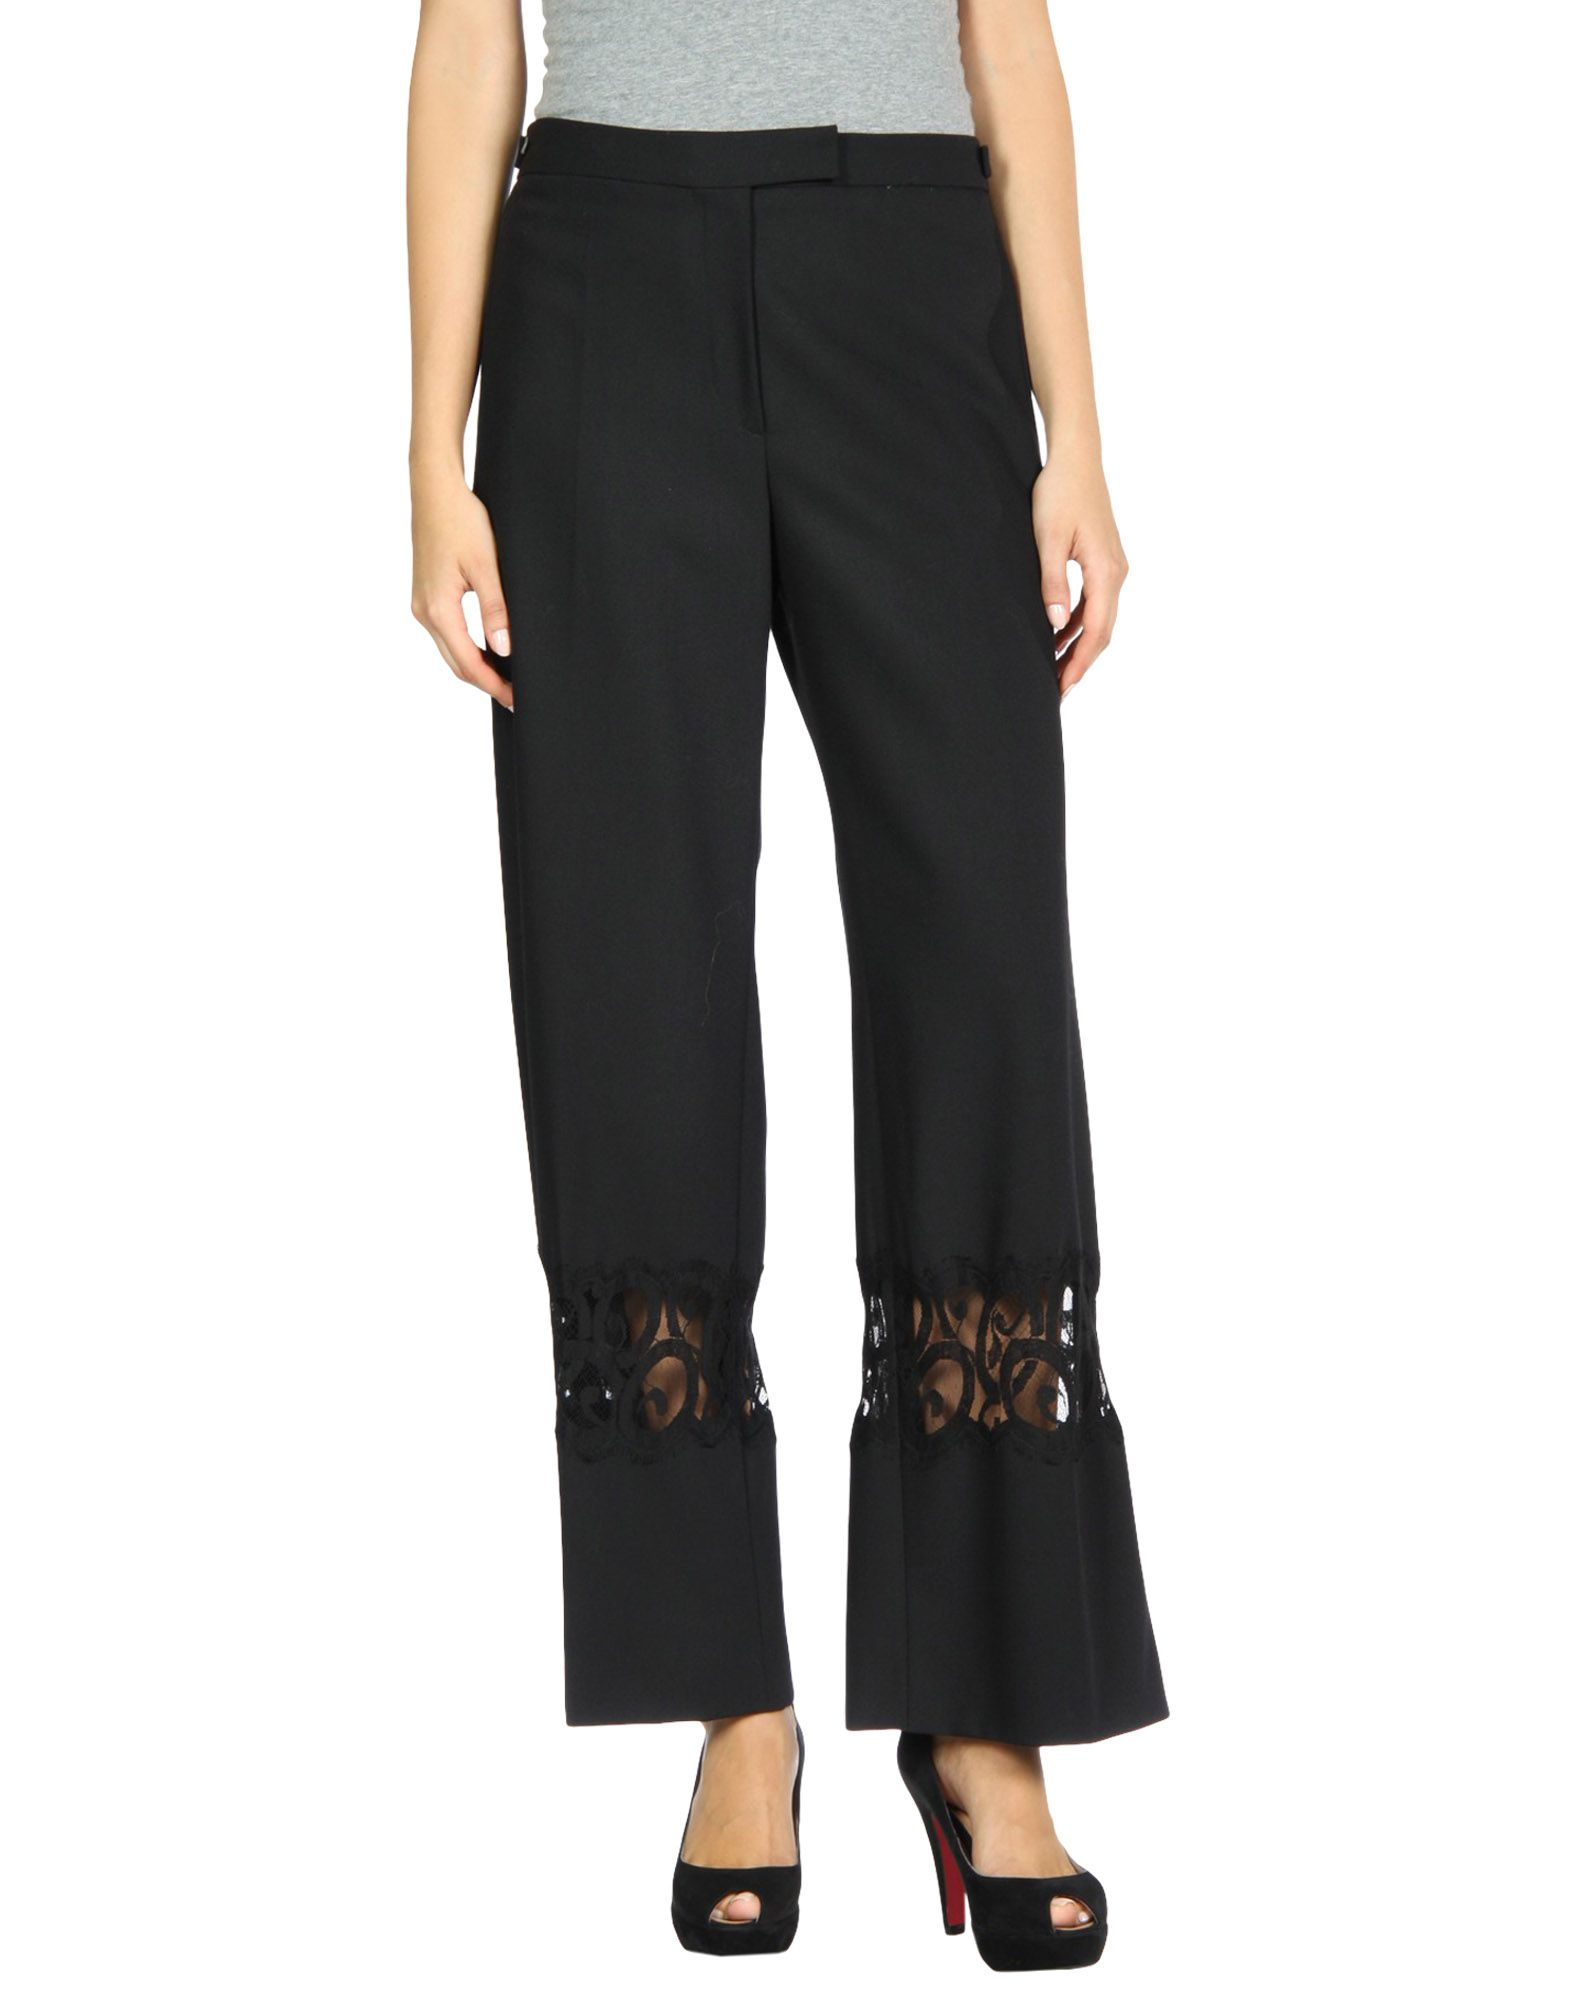 SHARON WAUCHOB Casual Pants in Black